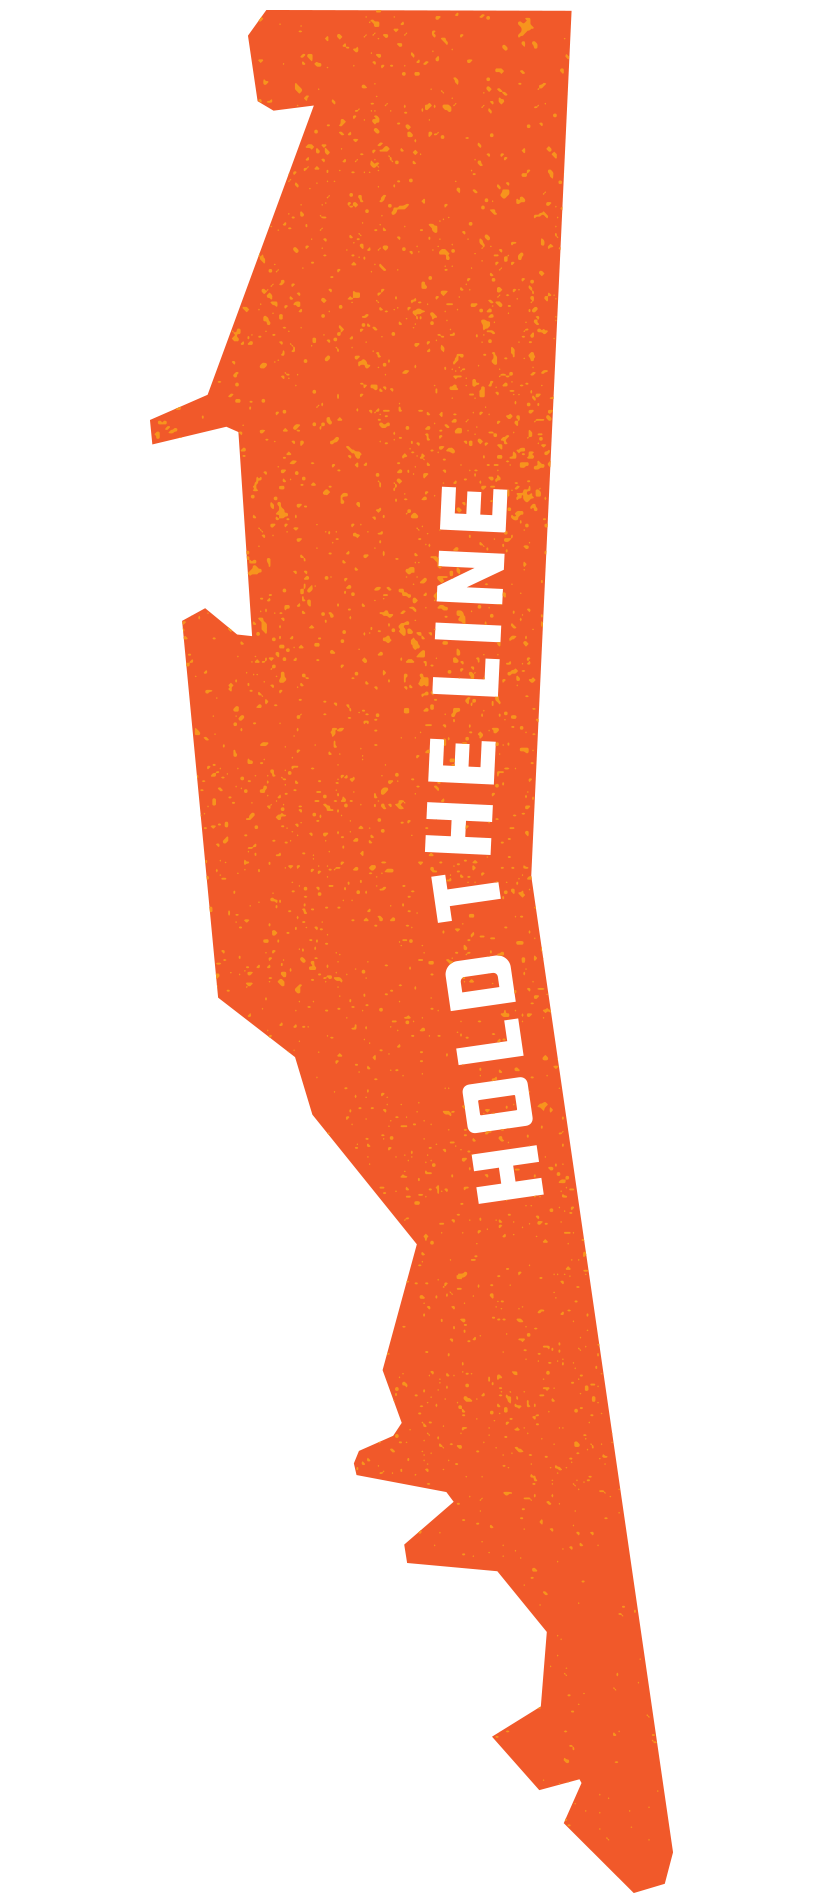 holdtheline_orange_rev2.png